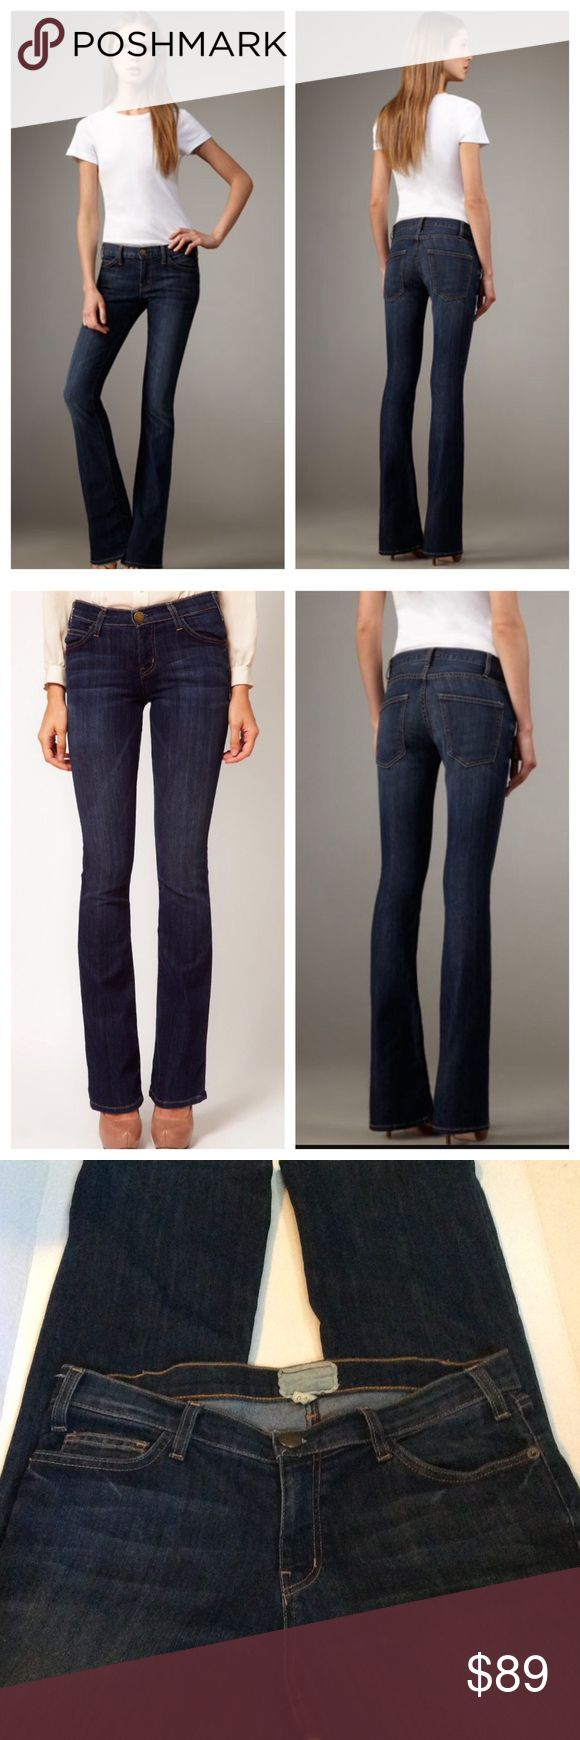 """Current/Elliott """"The Cowboy"""" Voyage Bootcut jeans Looking for a constant companion? The Current/Elliott Cowboy jeans deliver a flattering boot-cut in a classic dark wash—love them now and always. Cowboy cut in the voyage (dark blue) wash, featuring strategic whiskers and fading to slim figure. Low-rise style sits at hip. Slim through hip and thigh; flared into flattering boot-cut from knee. Clean, classic five-pocket style. Button/zip fly; belt loops. Cotton/polyester. Current/Elliott Jeans…"""